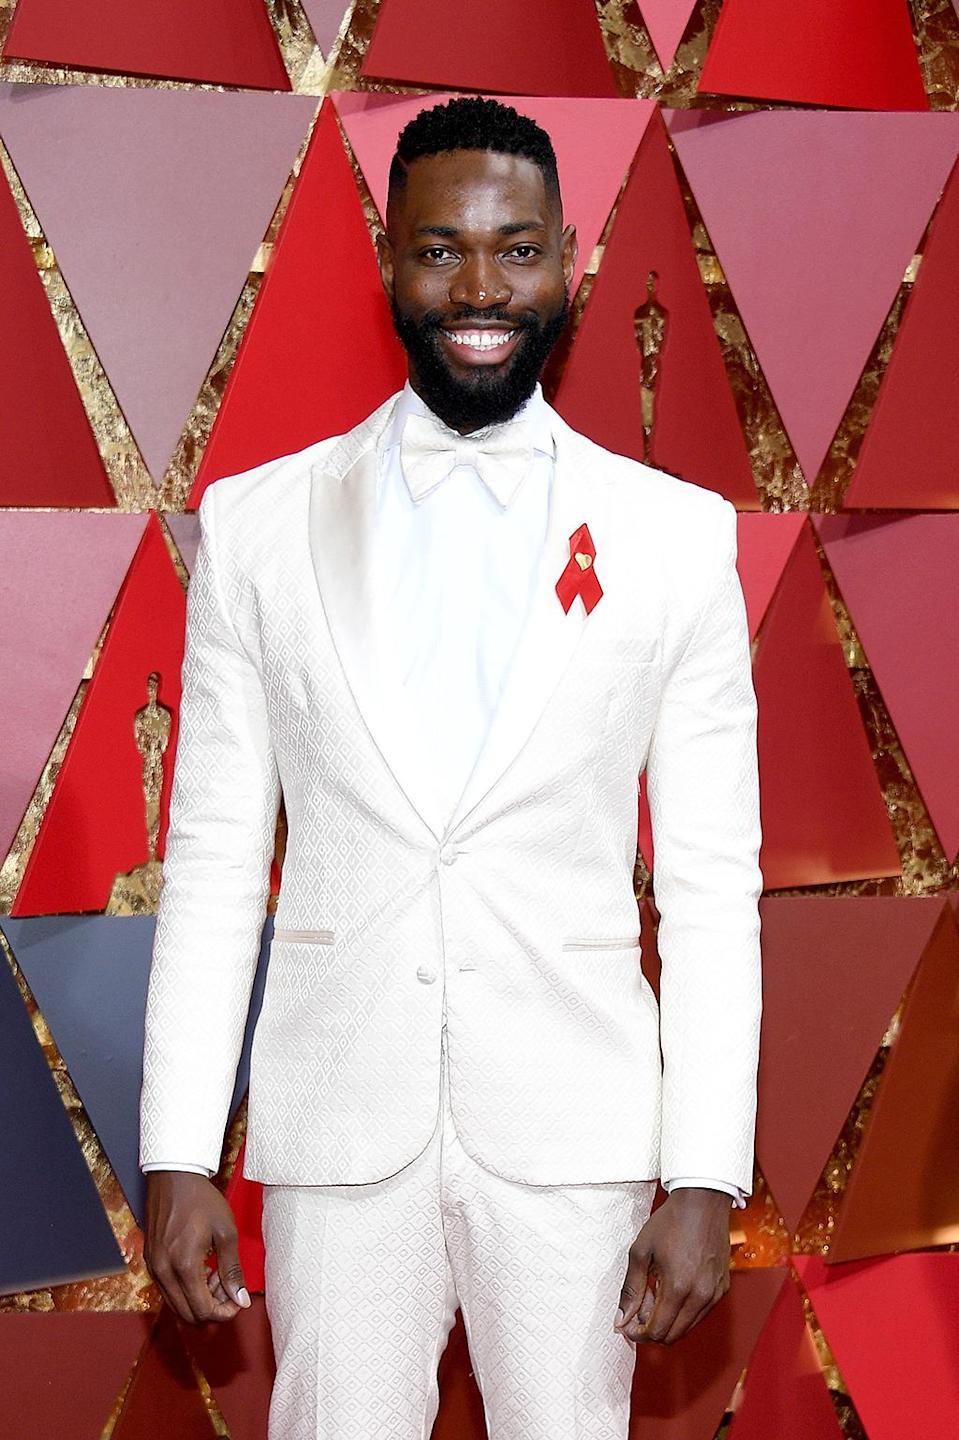 <p>Screenwriter Tarell Alvin McCraney attends the 89th Annual Academy Awards at Hollywood & Highland Center on February 26, 2017 in Hollywood, California. (Photo by Kevork Djansezian/Getty Images) </p>